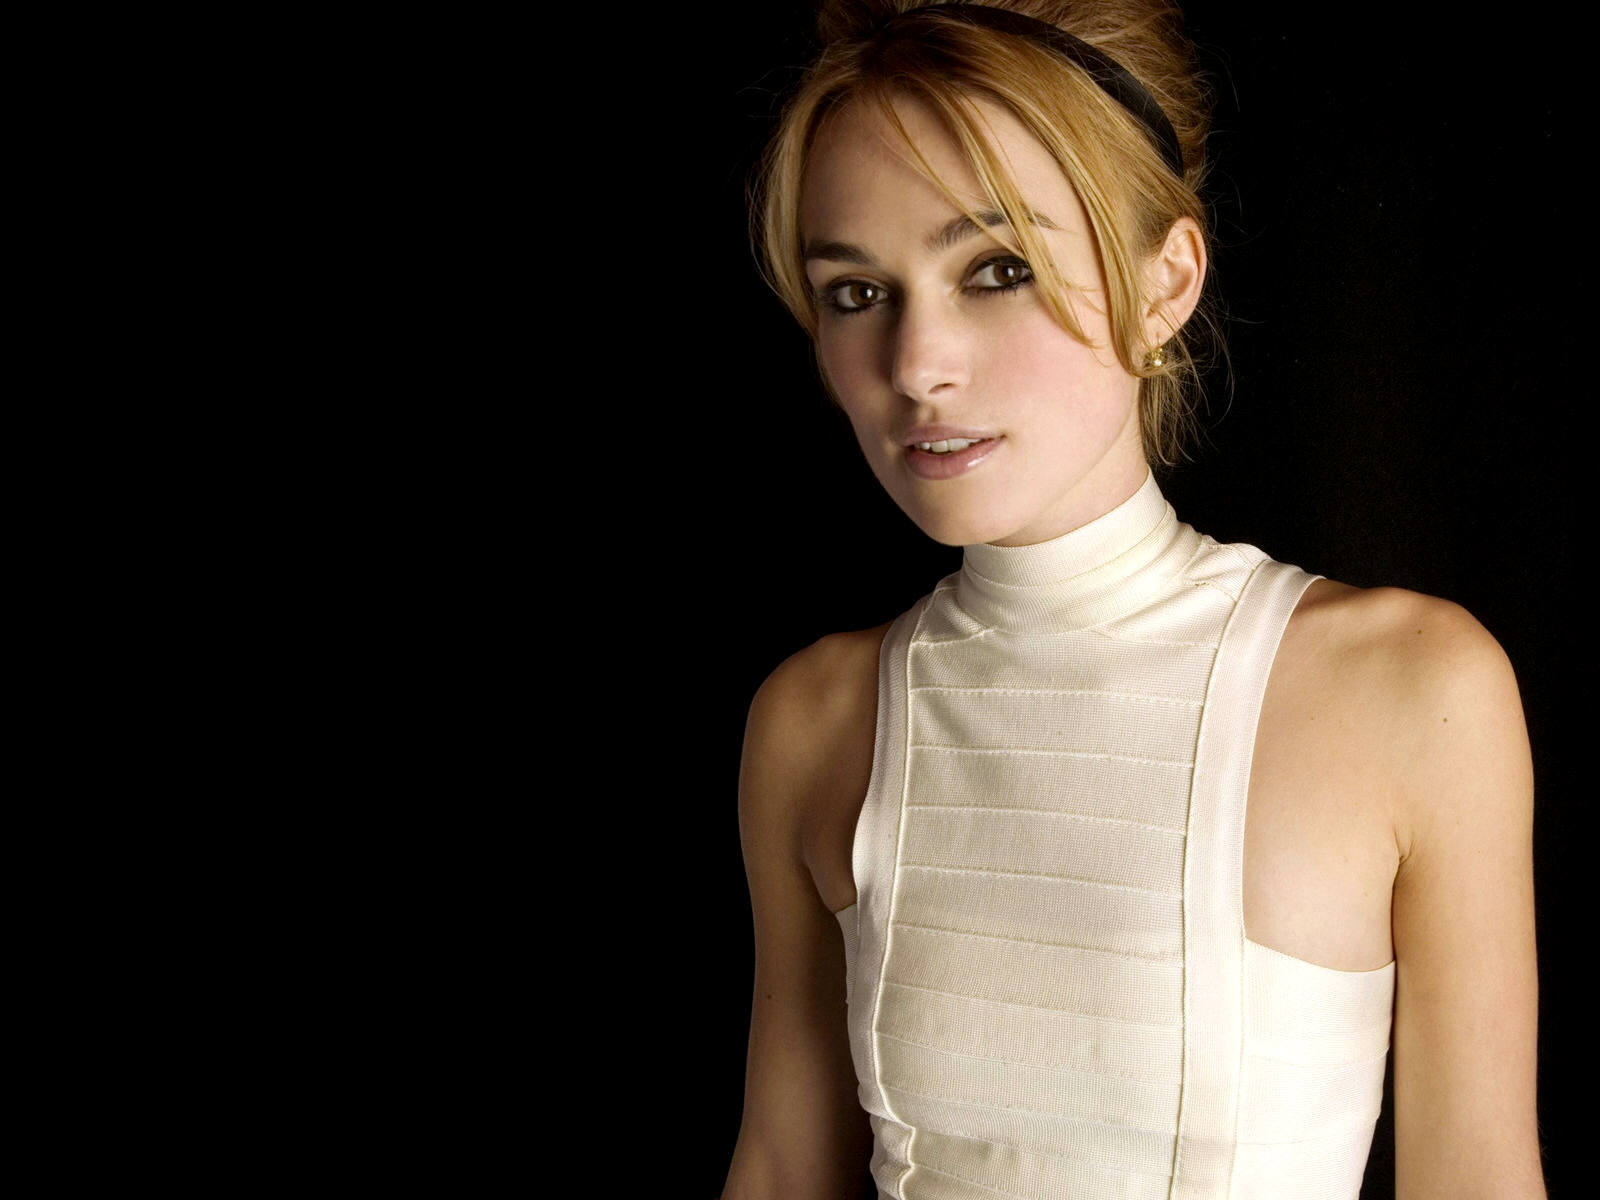 Keira Knightley Romance Hairstyles Pictures, Long Hairstyle 2013, Hairstyle 2013, New Long Hairstyle 2013, Celebrity Long Romance Hairstyles 2067